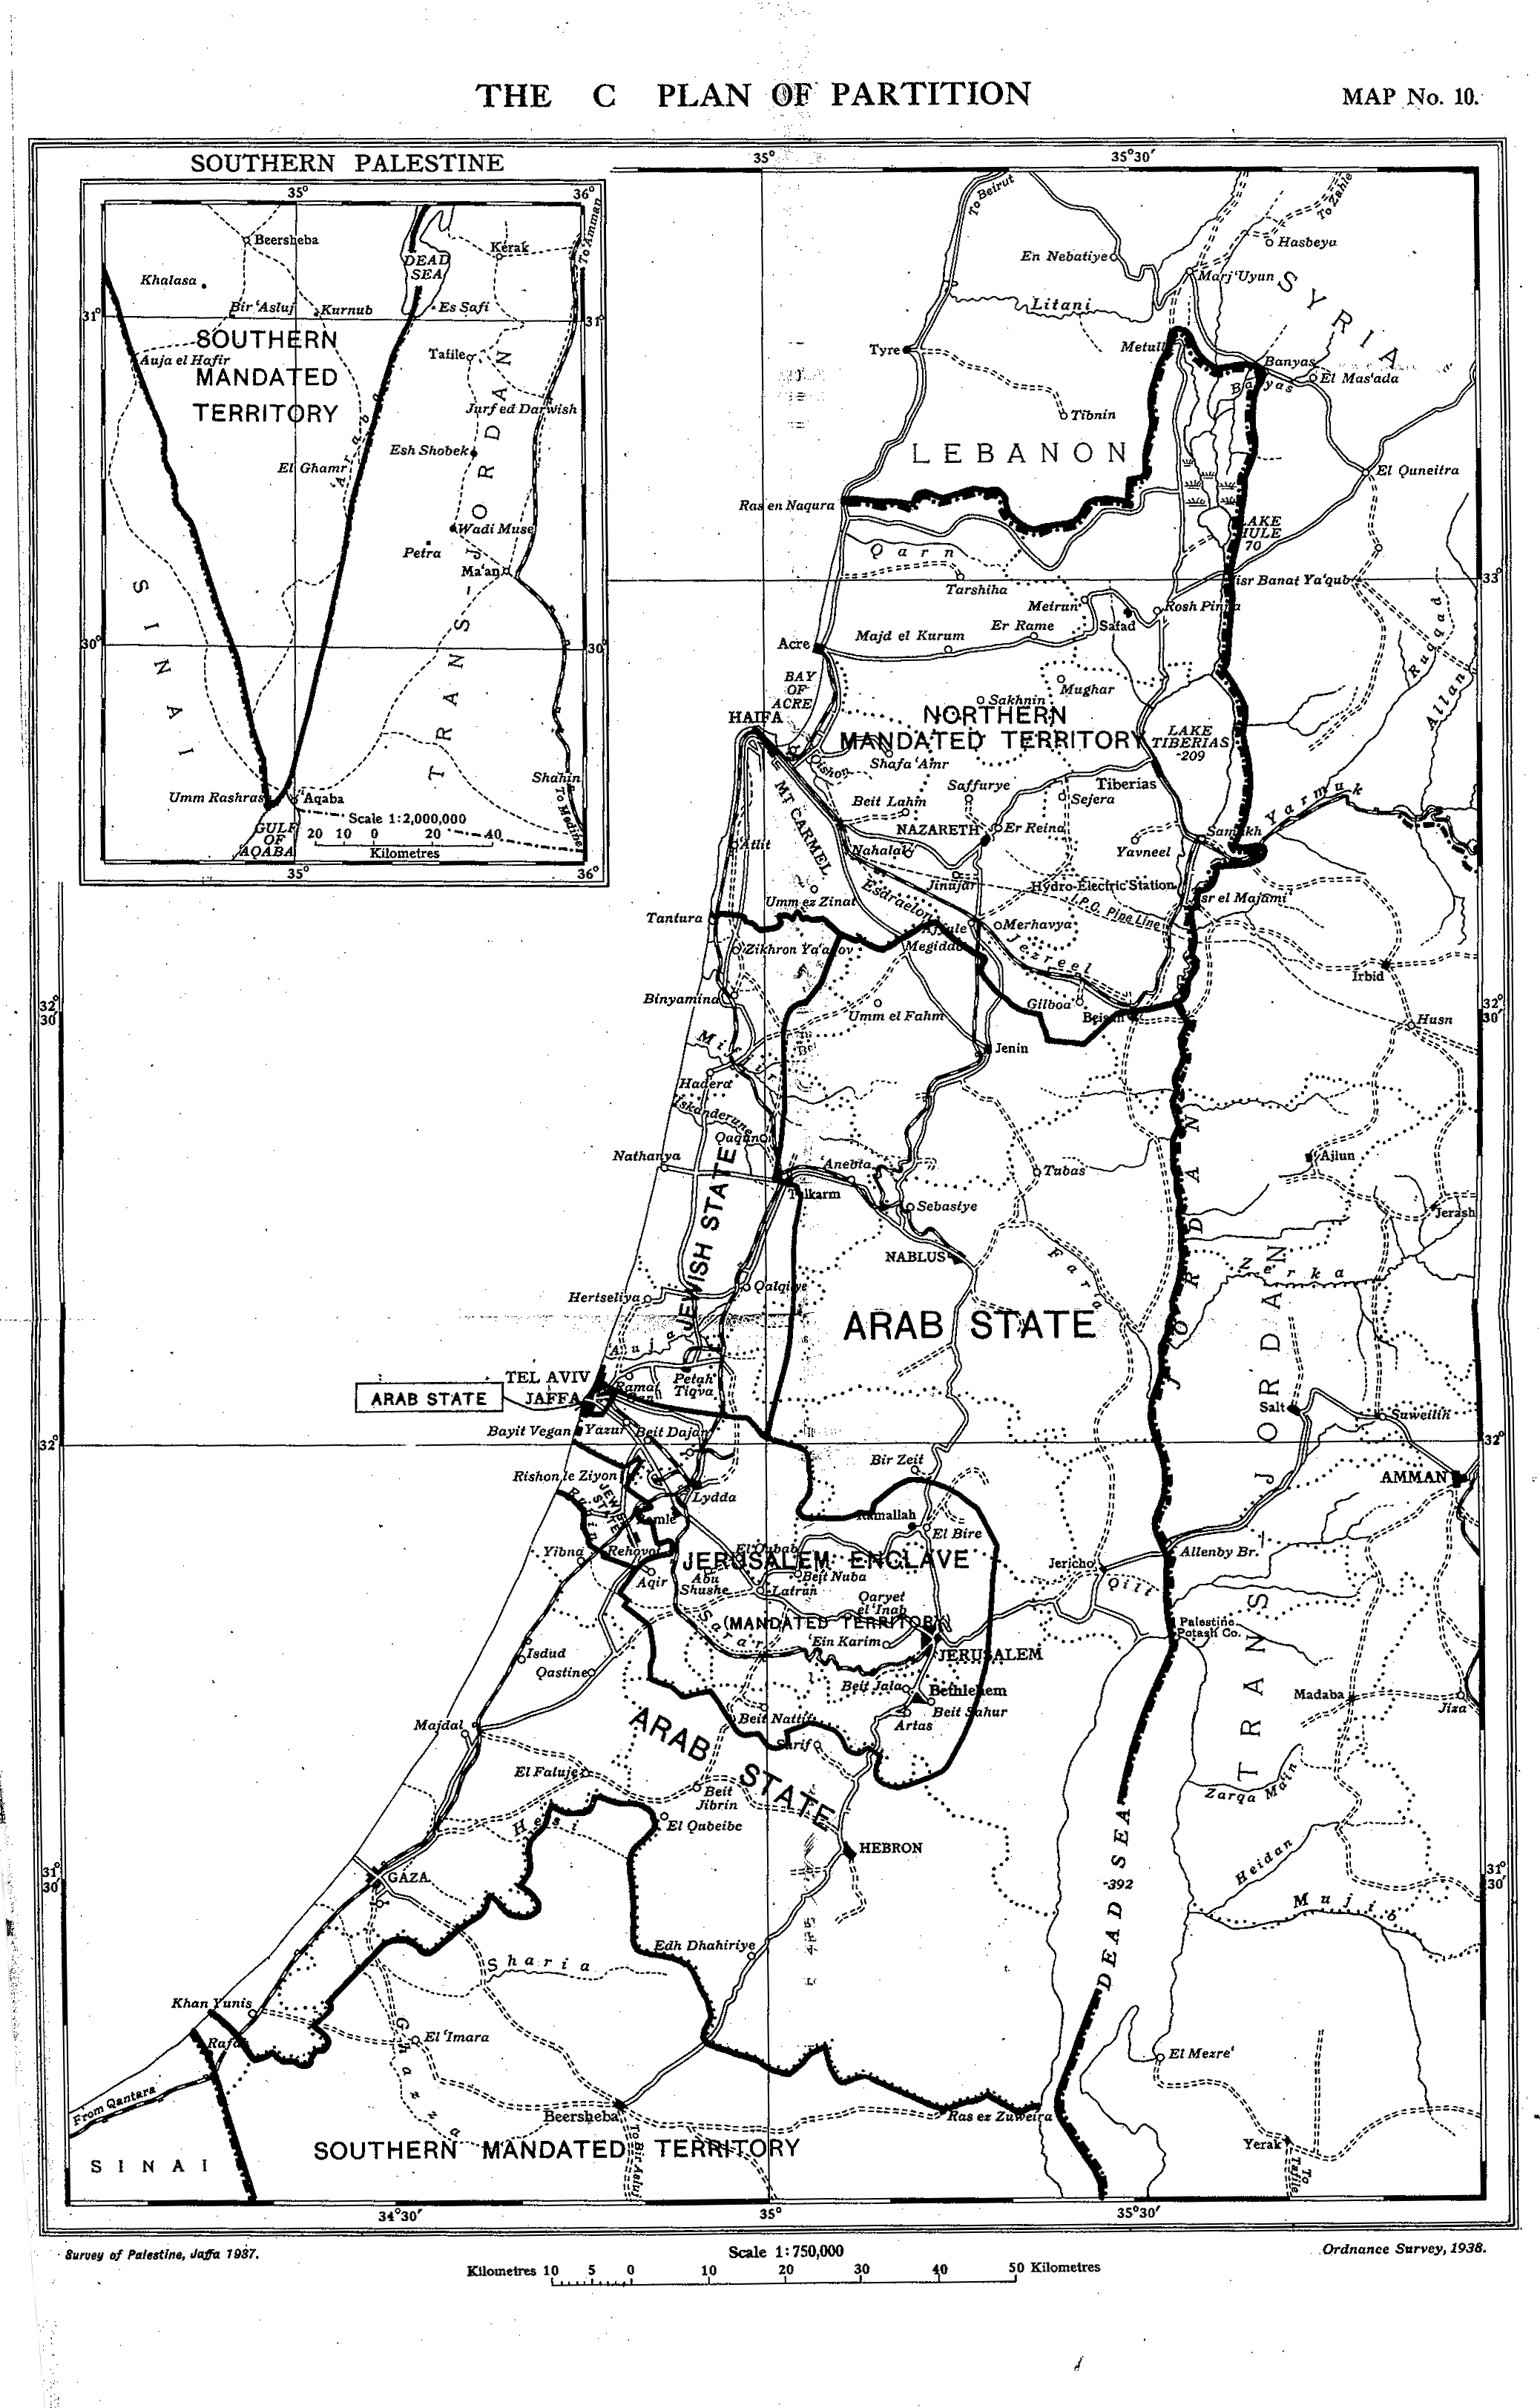 The Peel Commission Report of 1937 and the Origins of the Partition